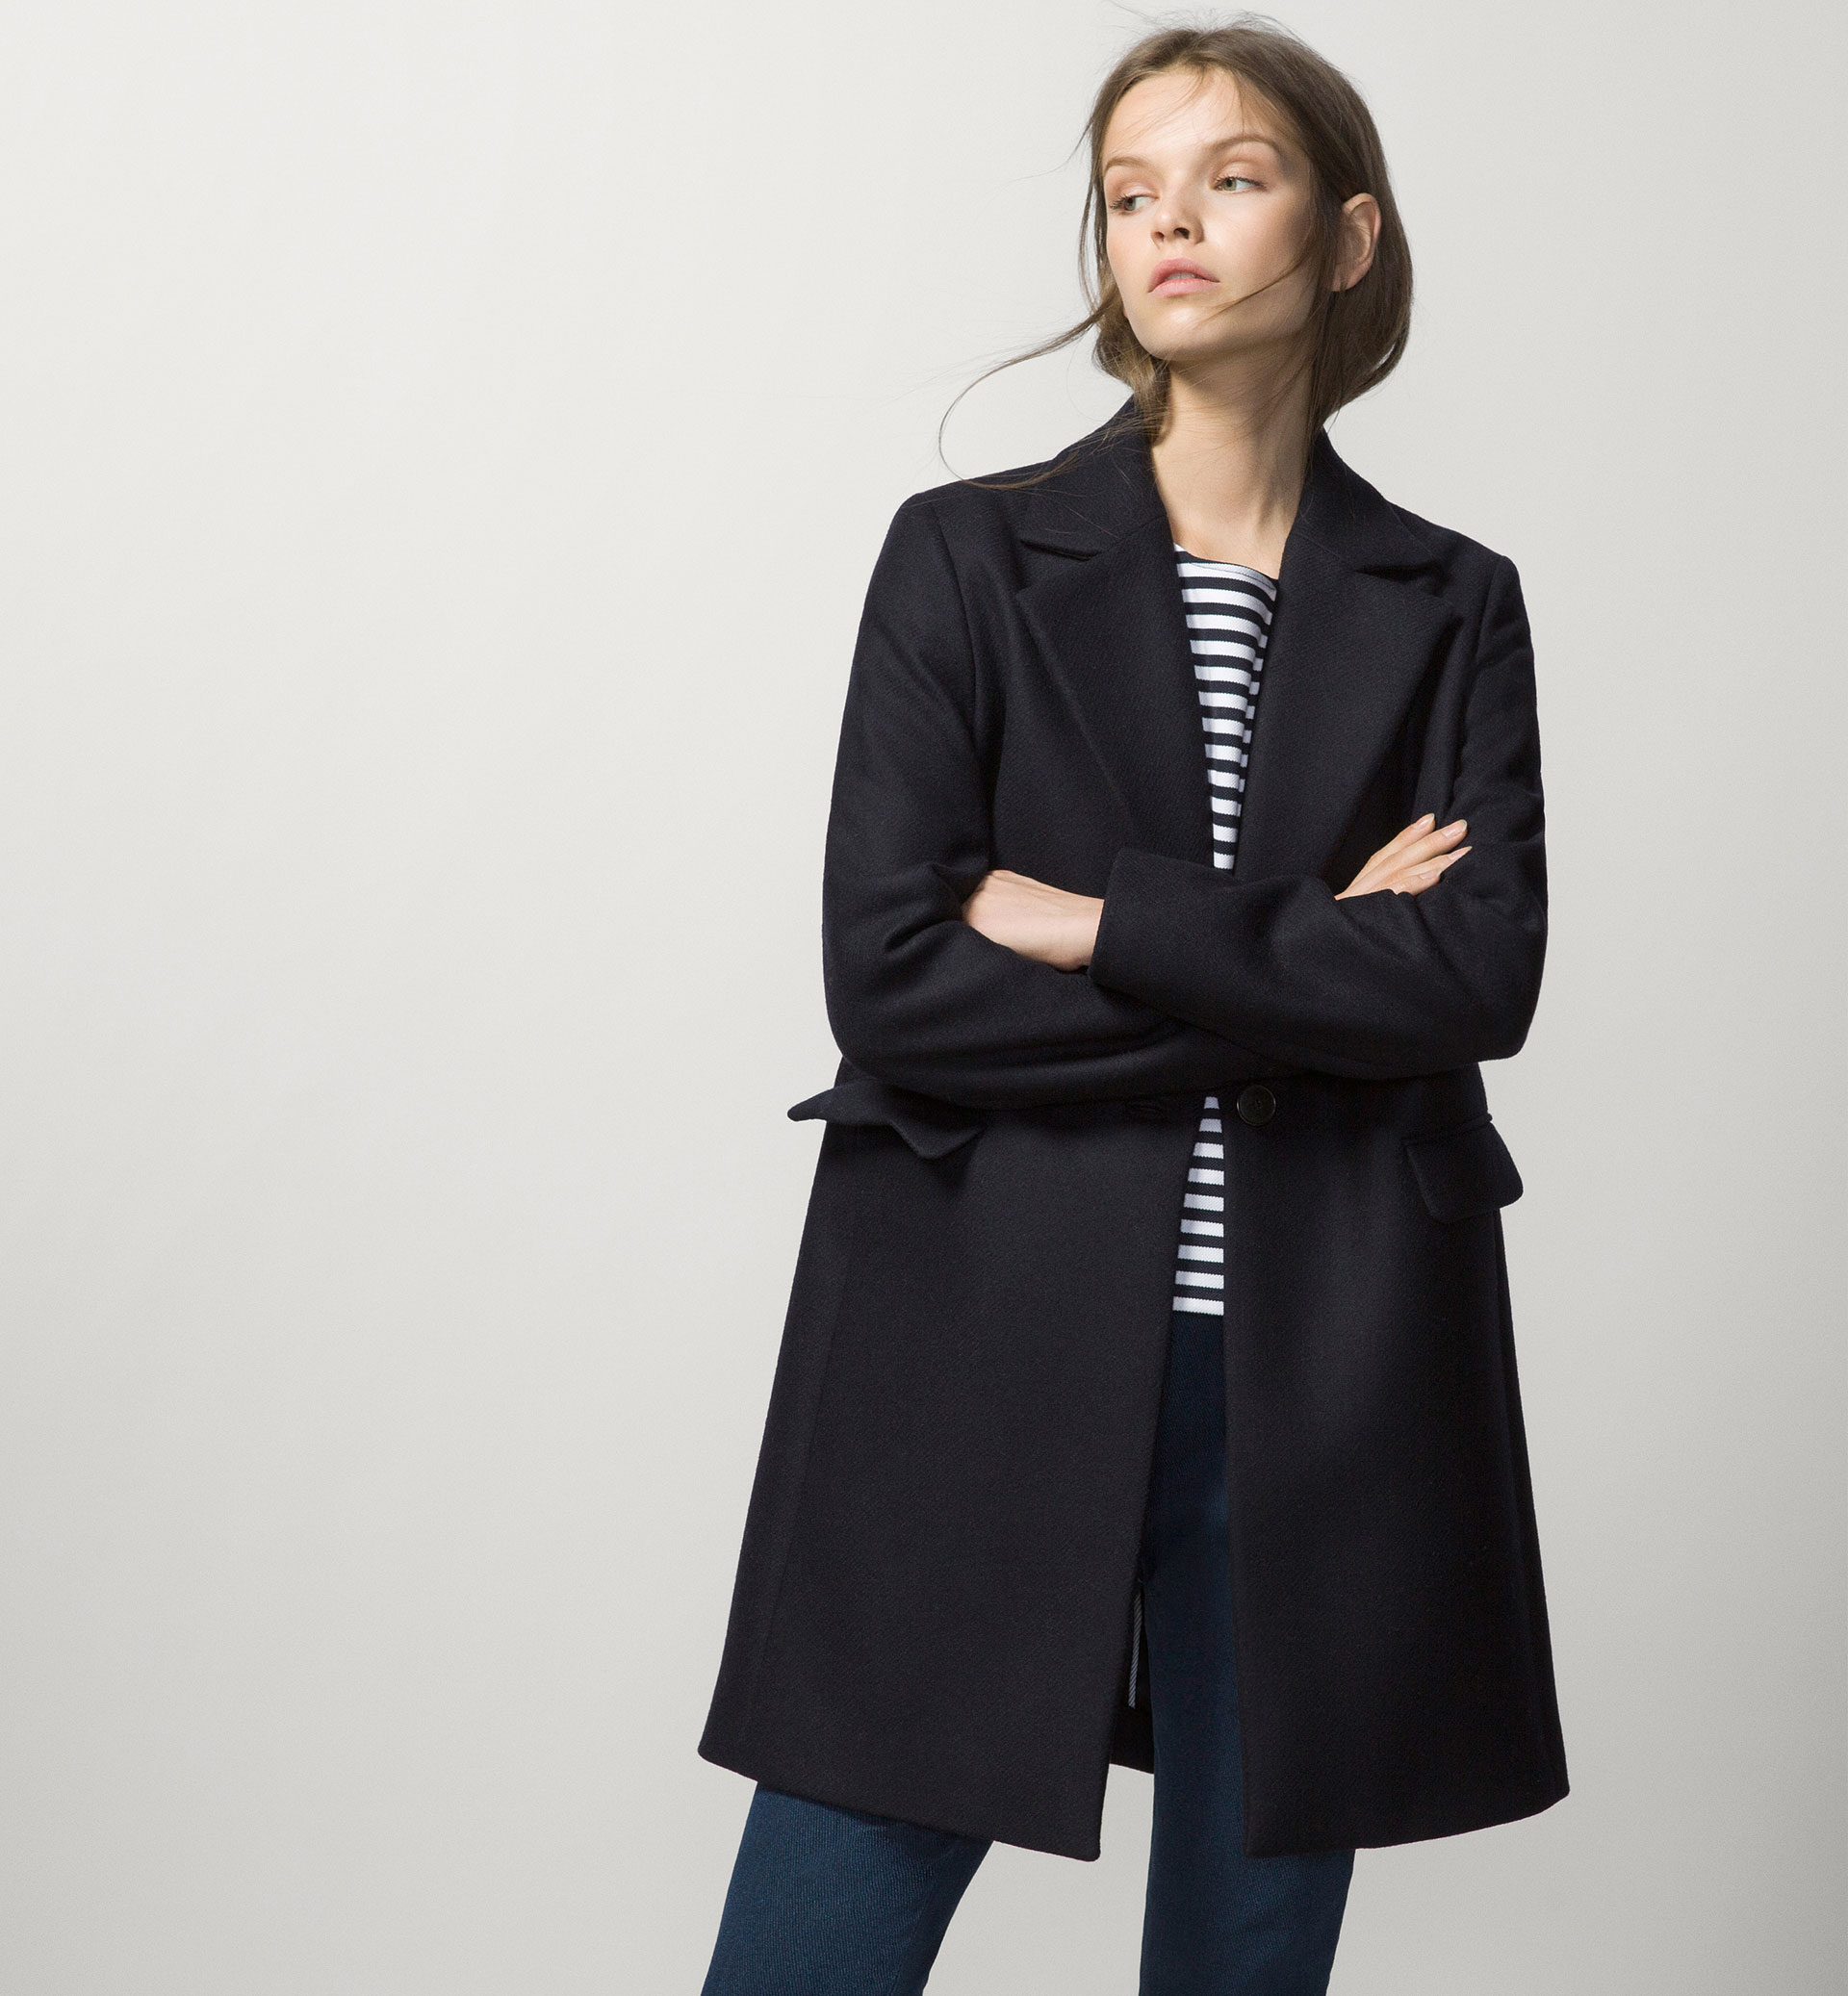 BASIC NAVY BLUE COAT